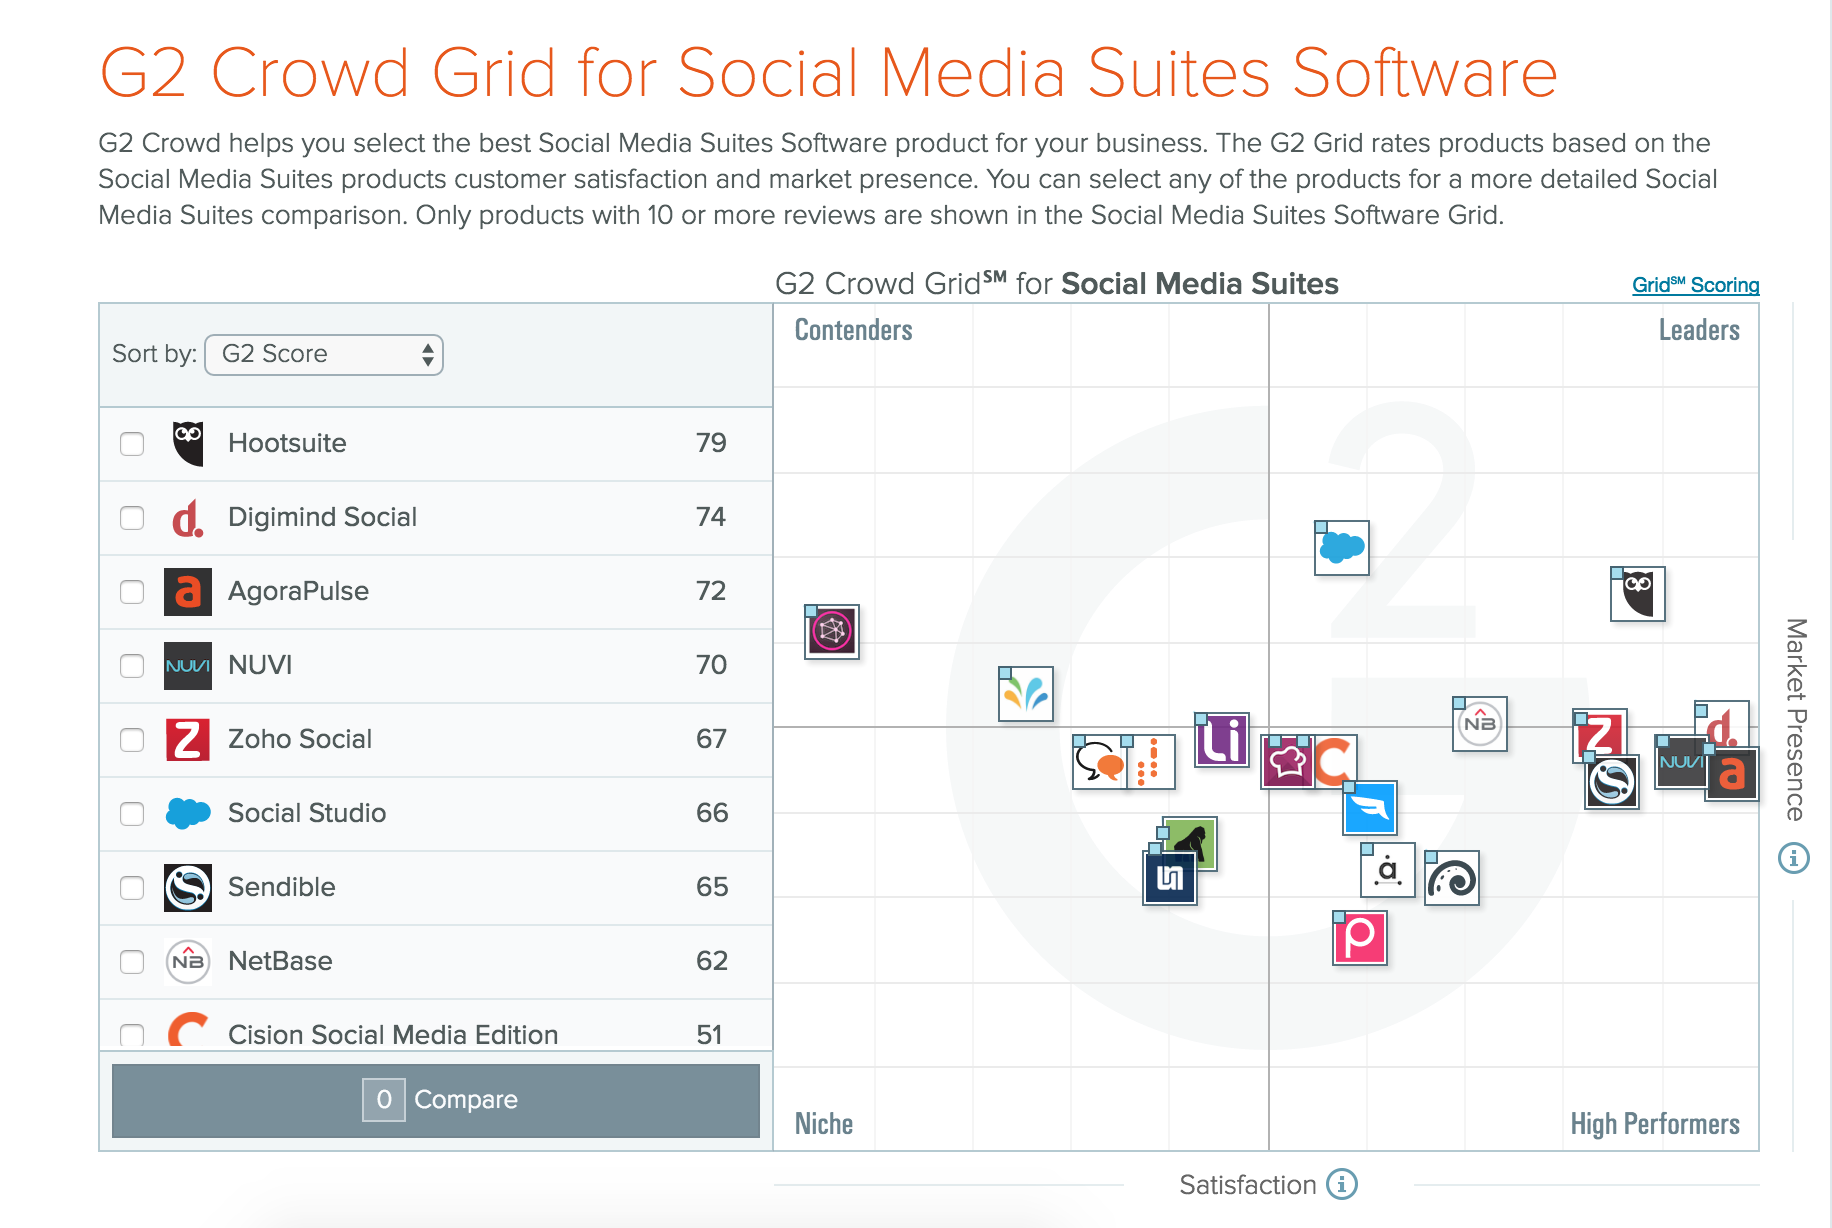 G2 Crowd Leader Fall 2016 - Social Media Suites - Grid